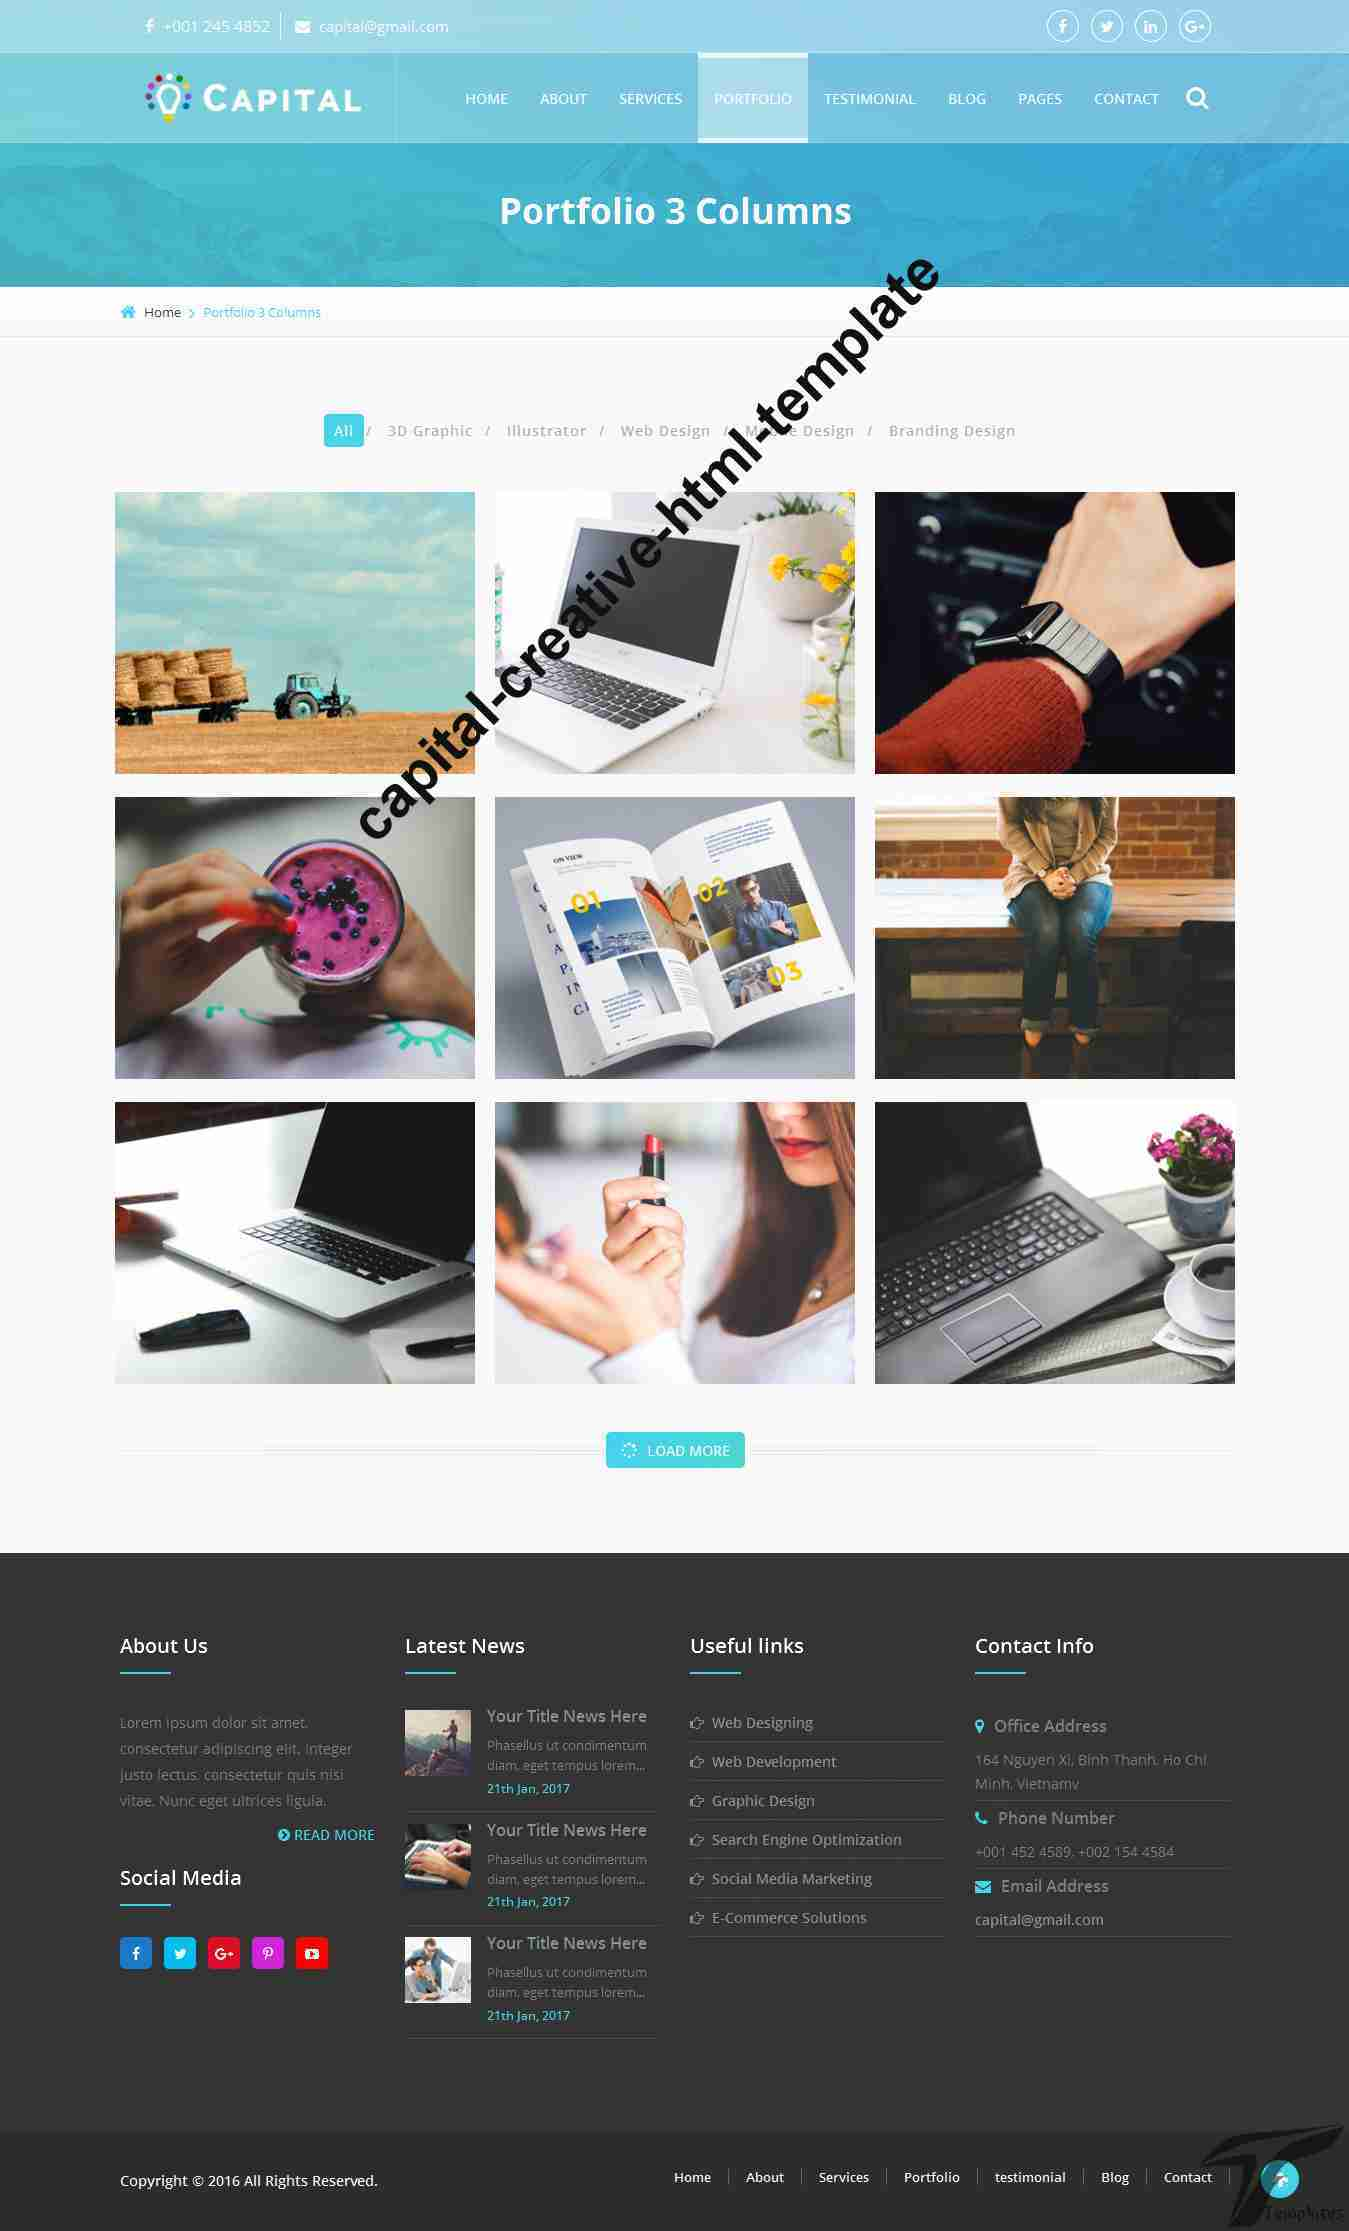 https://images.besthemes.com/images/h1_capital-creative-html-template6-_-205260579/Theme-s20s-Preview/04_Portfolio-3-Columns.png